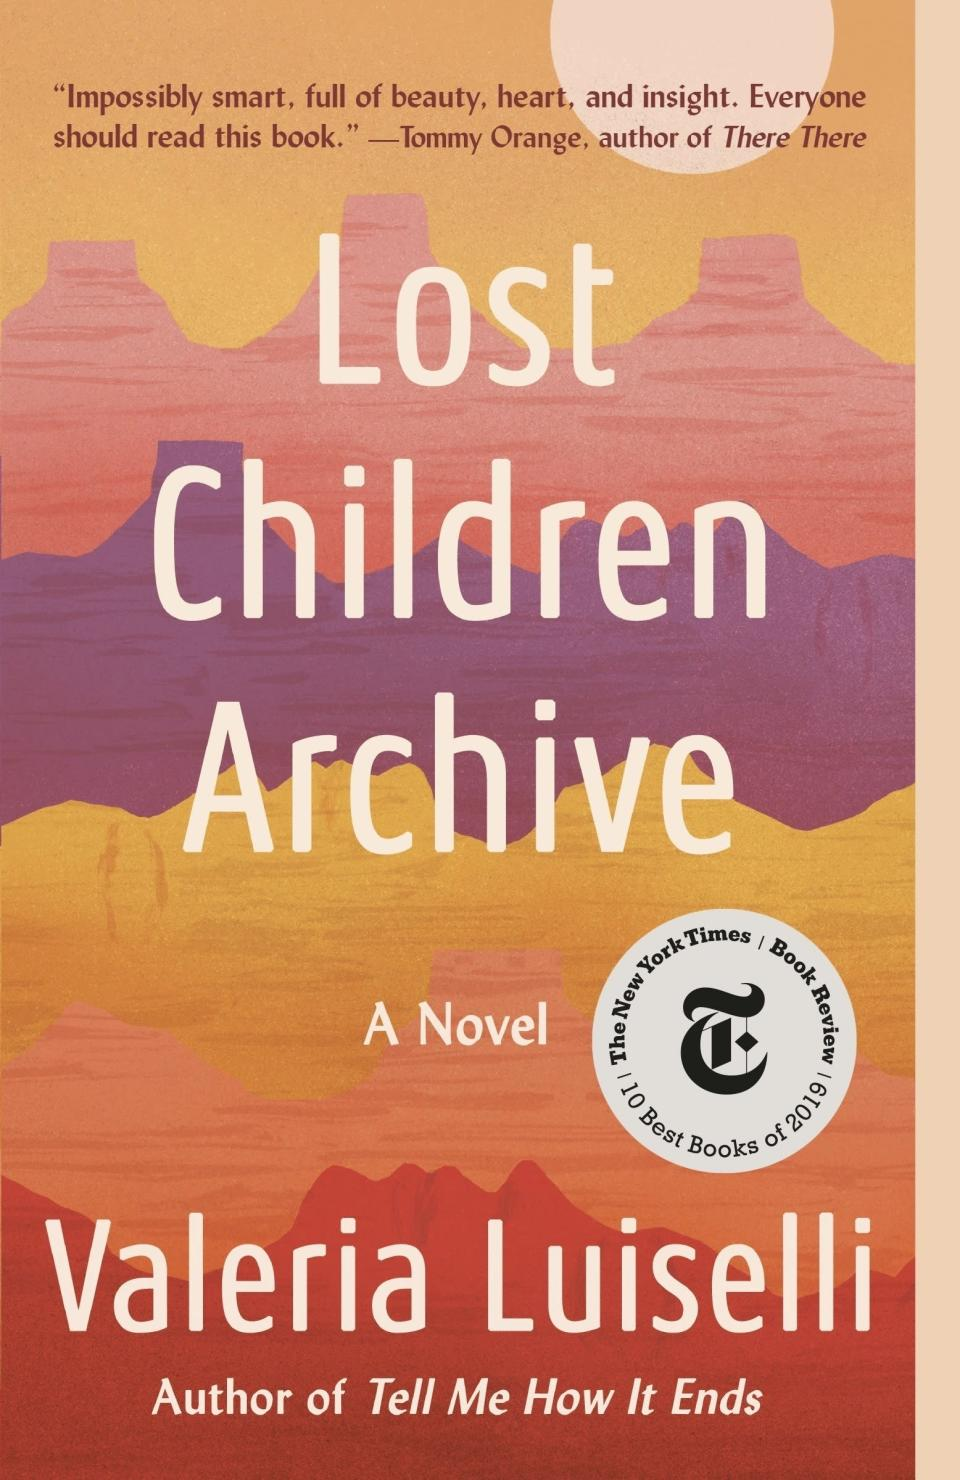 """This cover image released by Vintage shows """"Lost Children Archive,"""" a novel by Valeria Luiselli. (Vintage via AP)"""